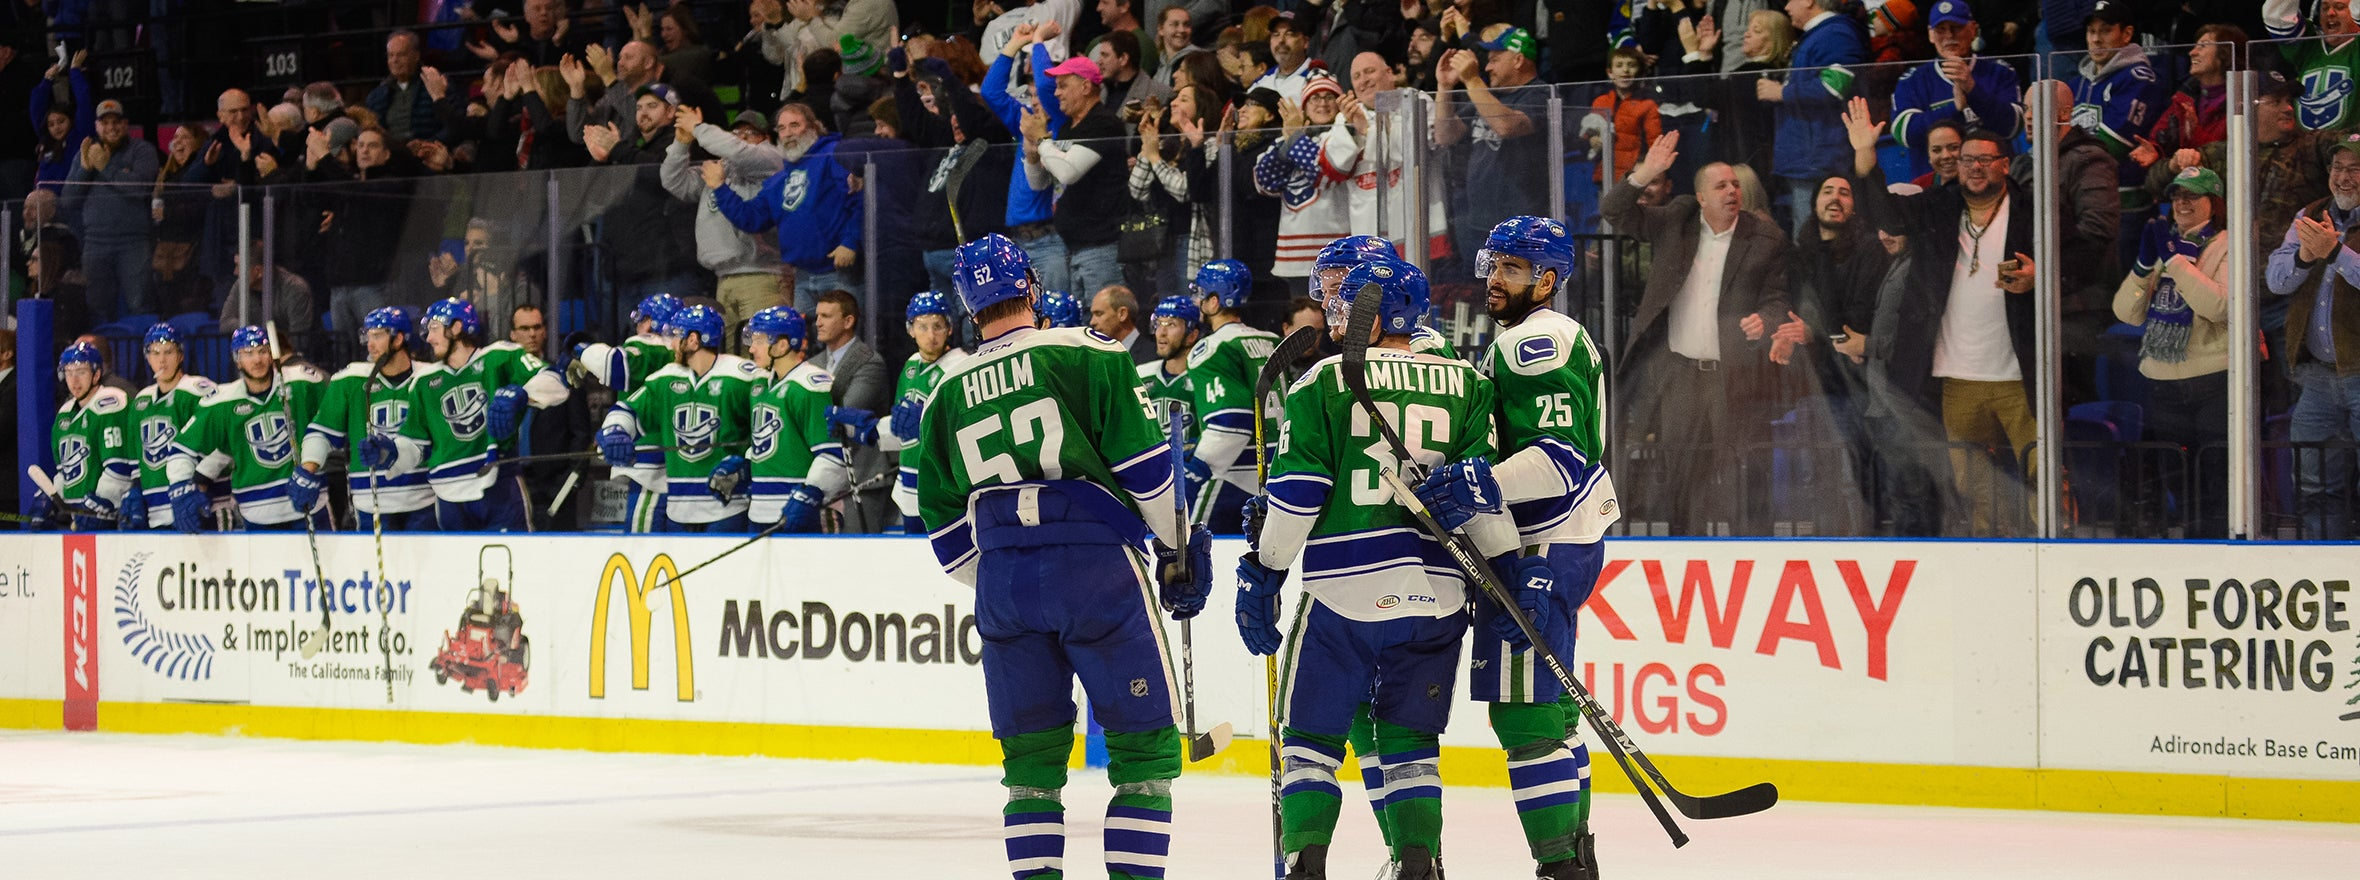 BACHMAN'S BIG NIGHT CARRIES COMETS TO WIN OVER CRUNCH